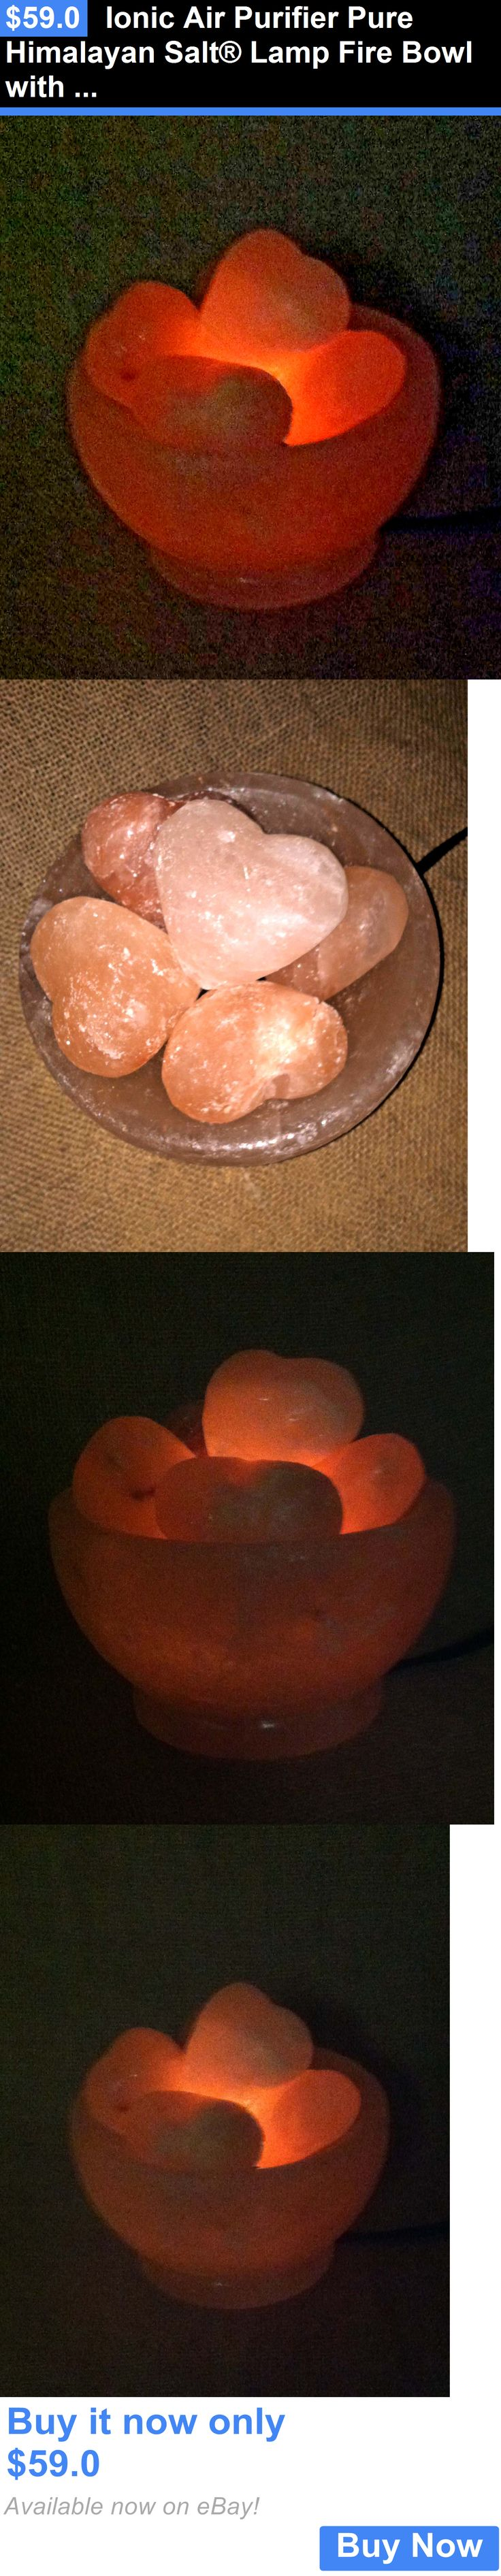 Massage Stones and Rocks: Ionic Air Purifier Pure Himalayan Salt® Lamp Fire Bowl With Heart Crystal Stones BUY IT NOW ONLY: $59.0